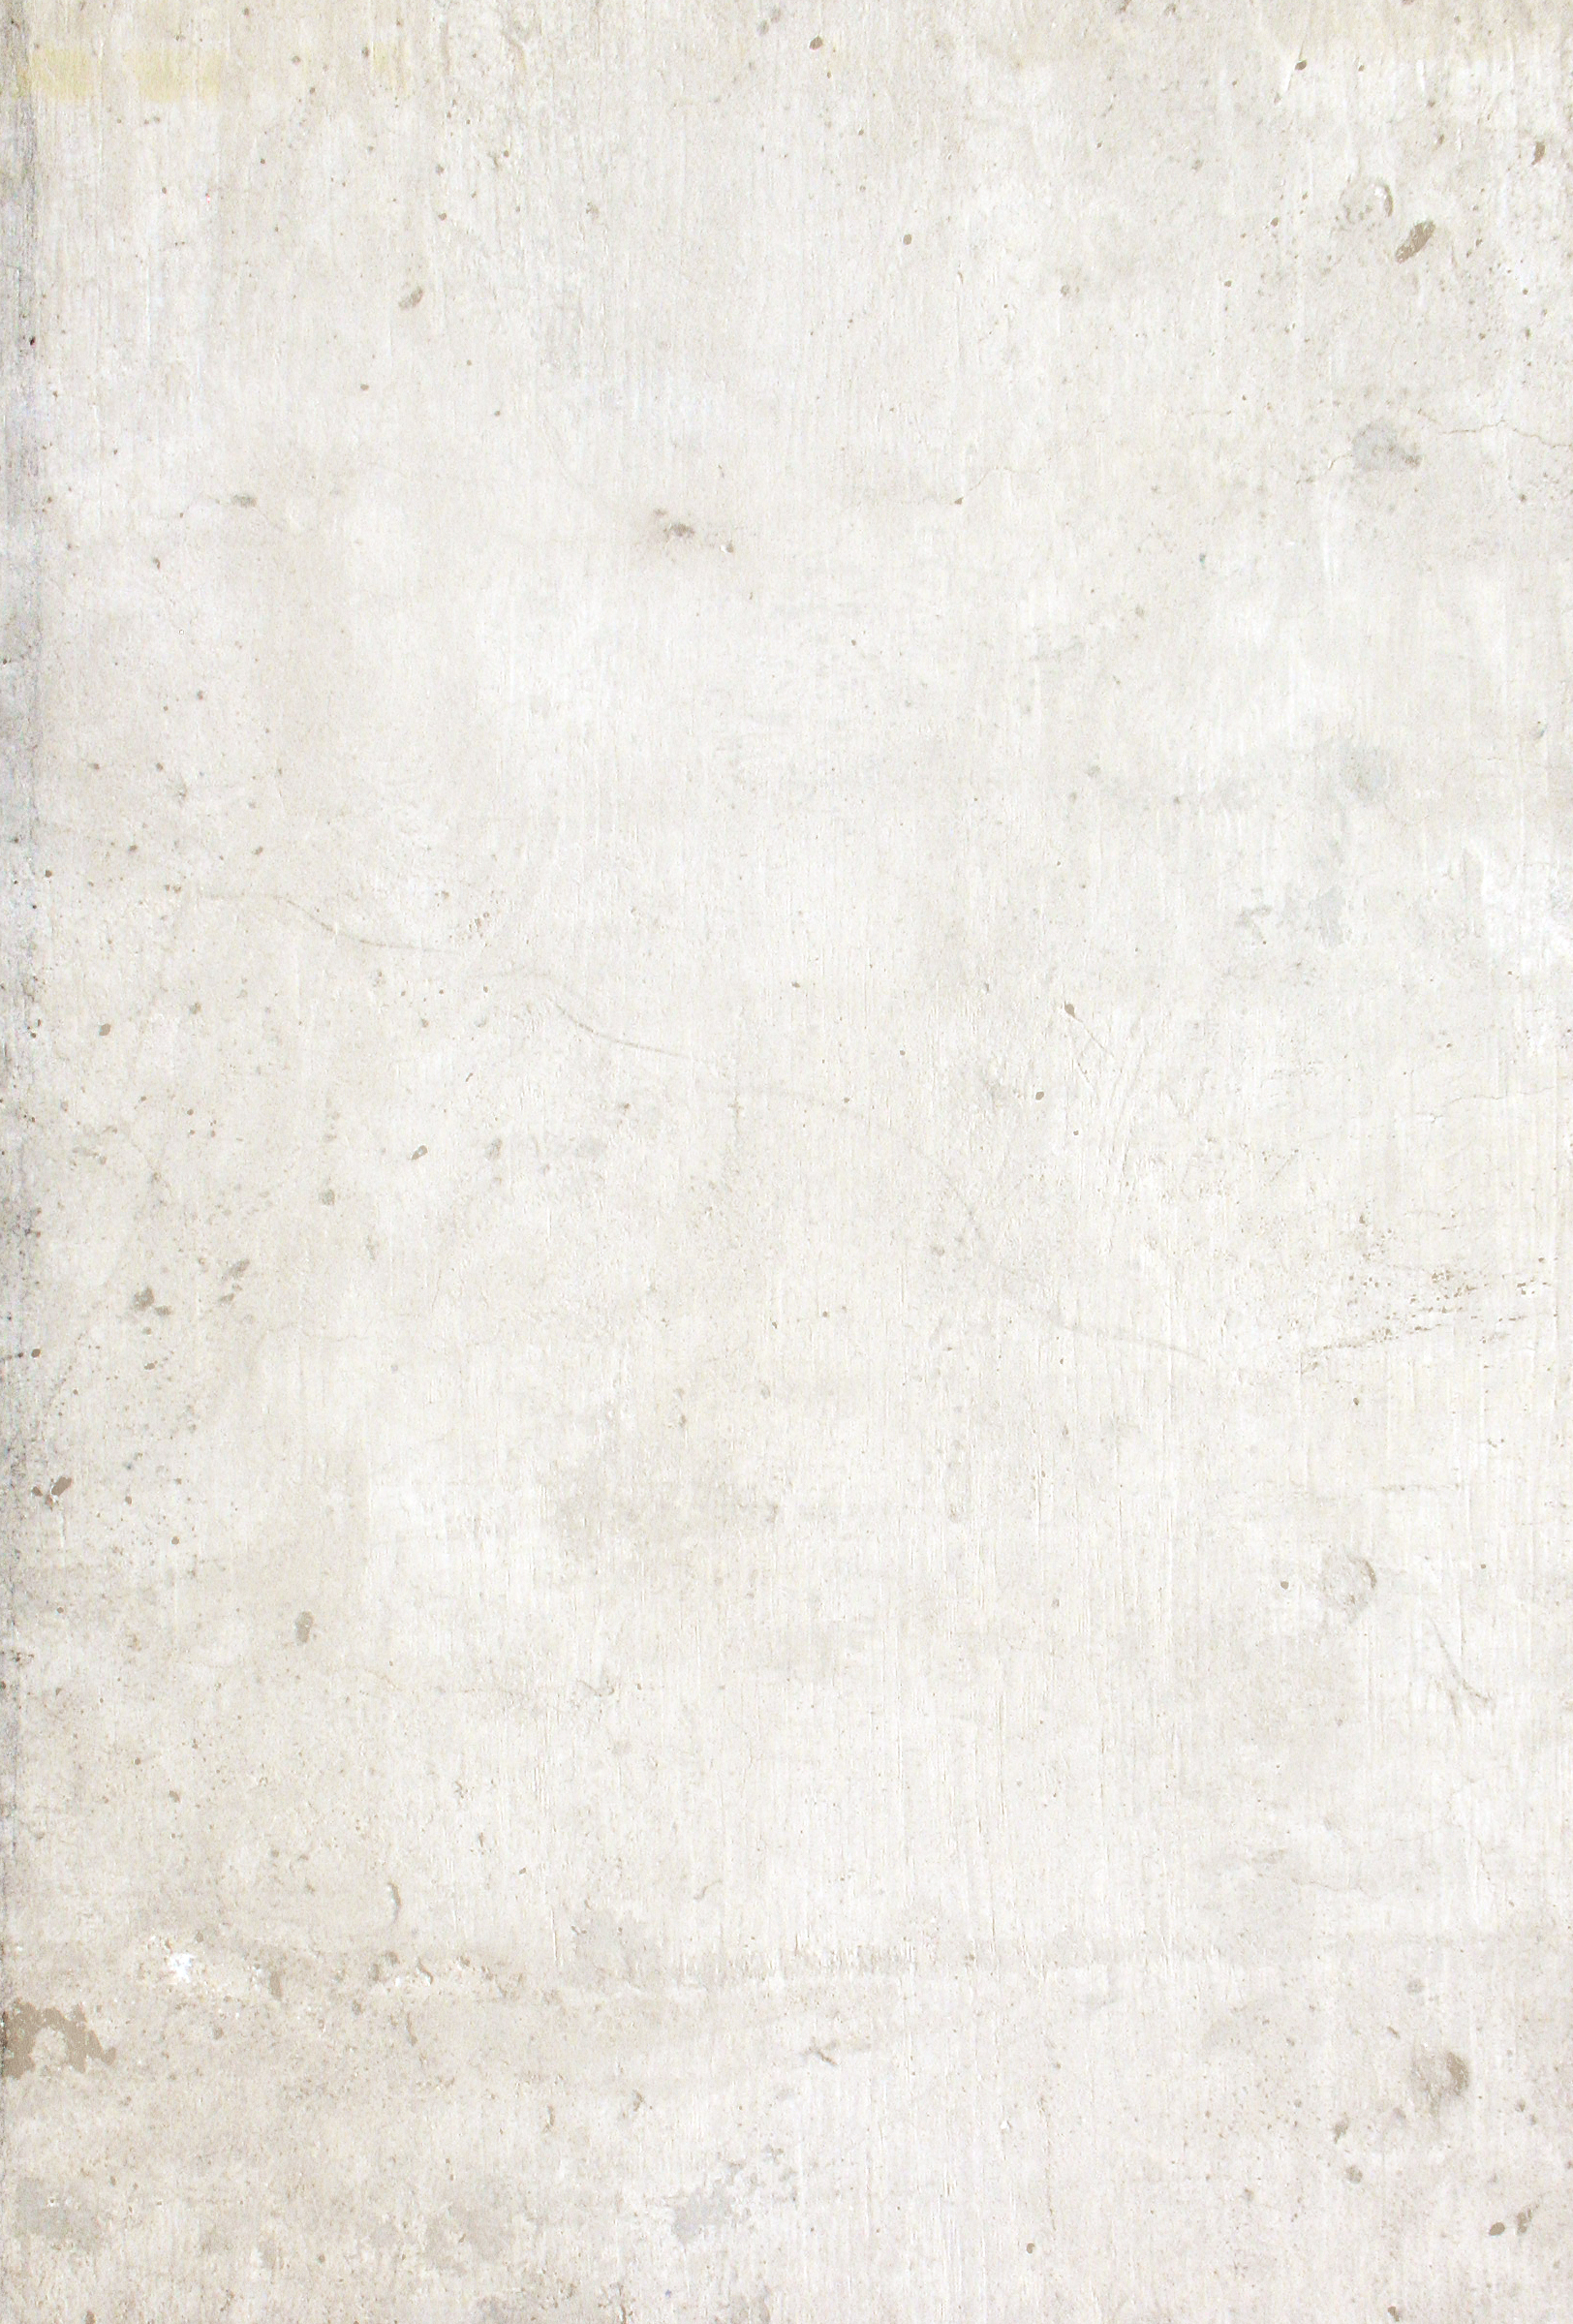 Free Dirty White Grunge Texture Texture L T